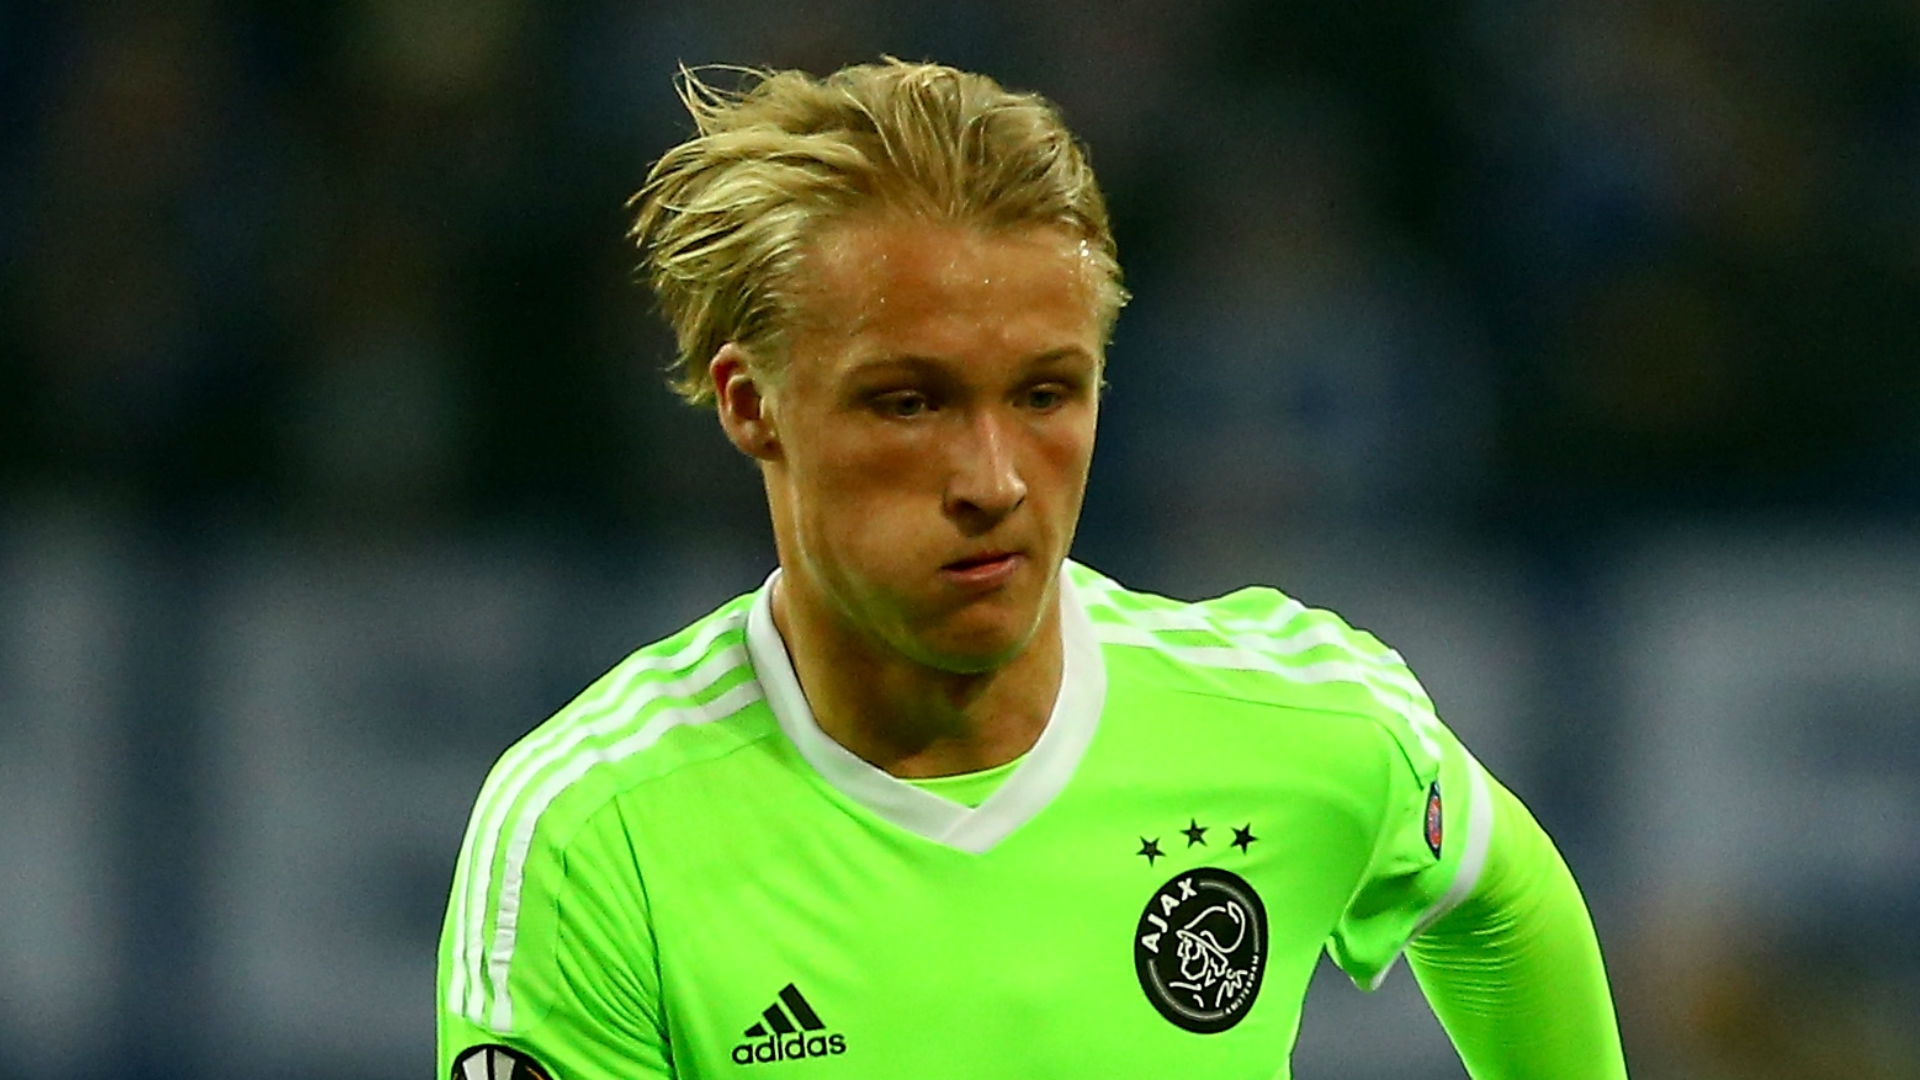 Kasper Dolberg is on the transfer radar of many of the top European clubs